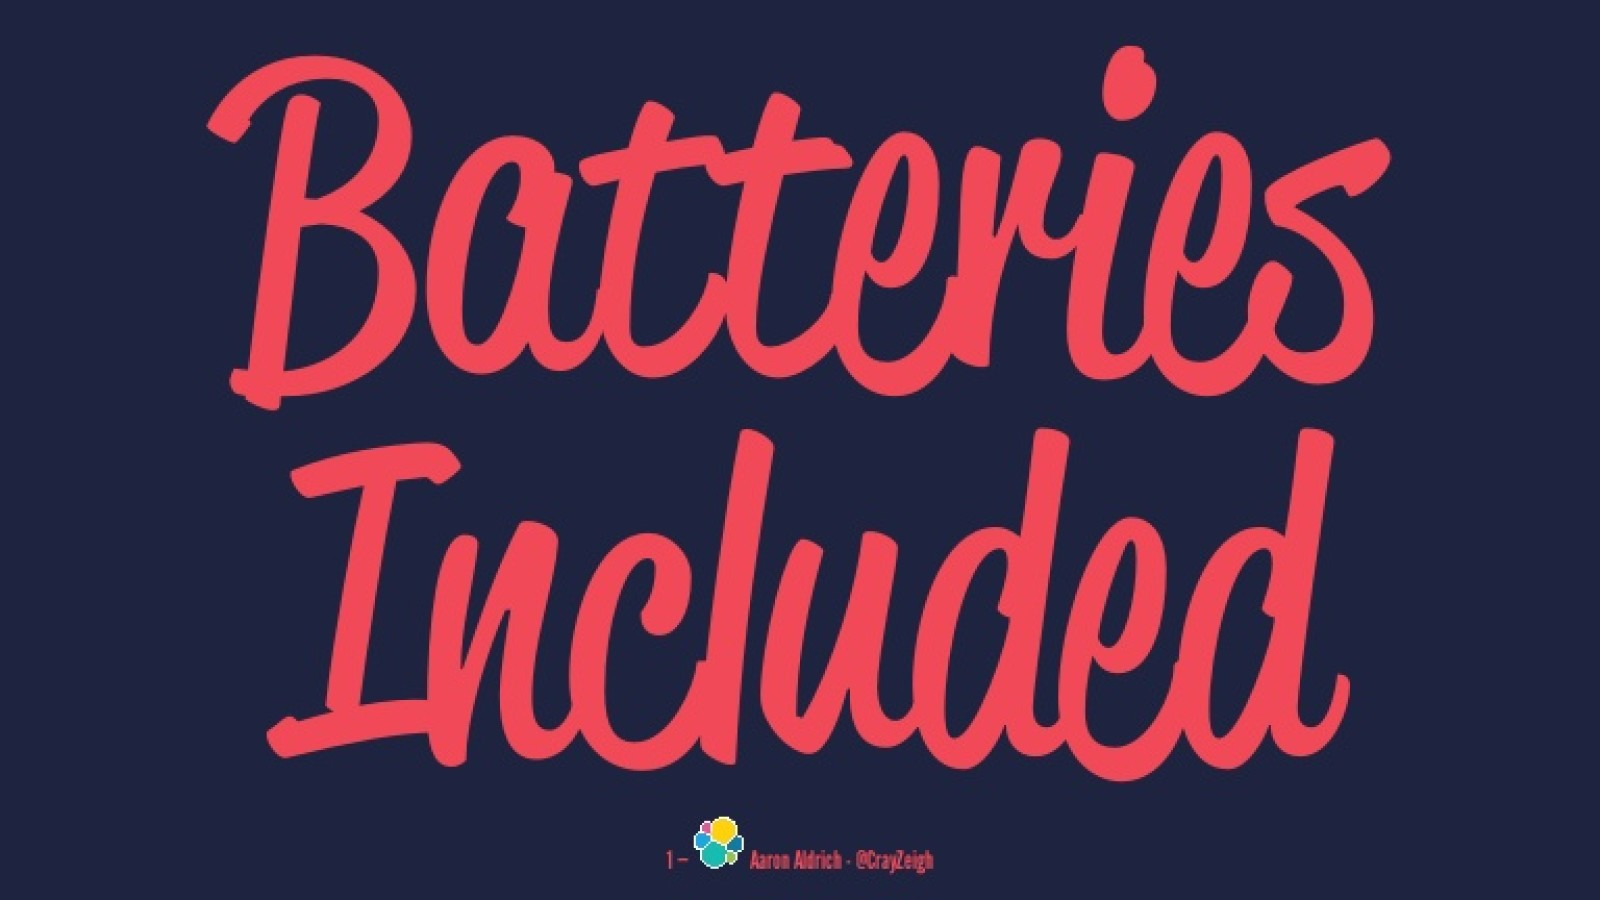 Batteries Included: Enabling Community Contribution